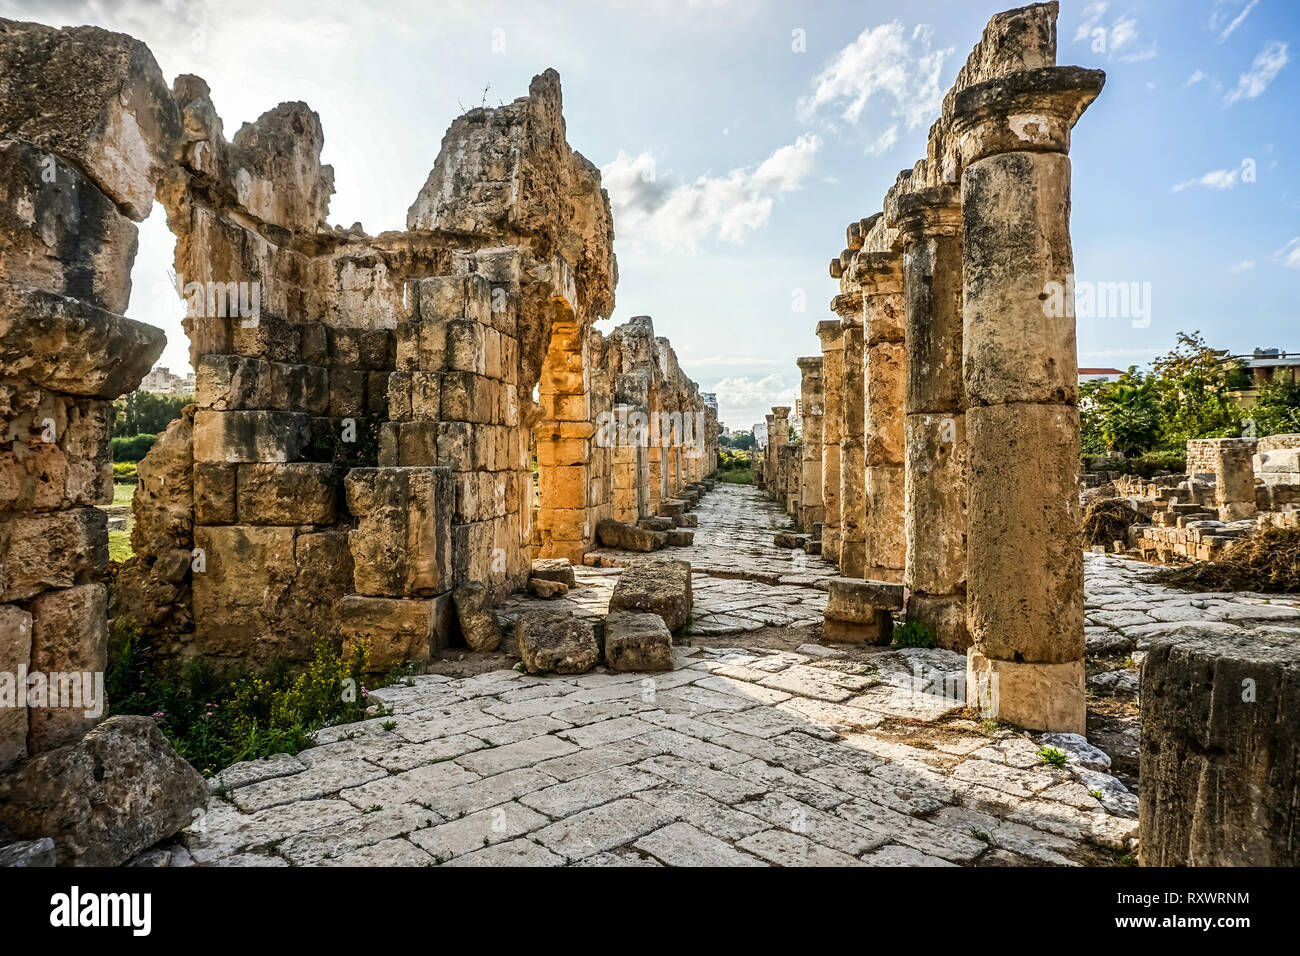 Tyre Hippodrome Ruins and Necropolis with Picturesque Pillars Leading Line - Stock Image